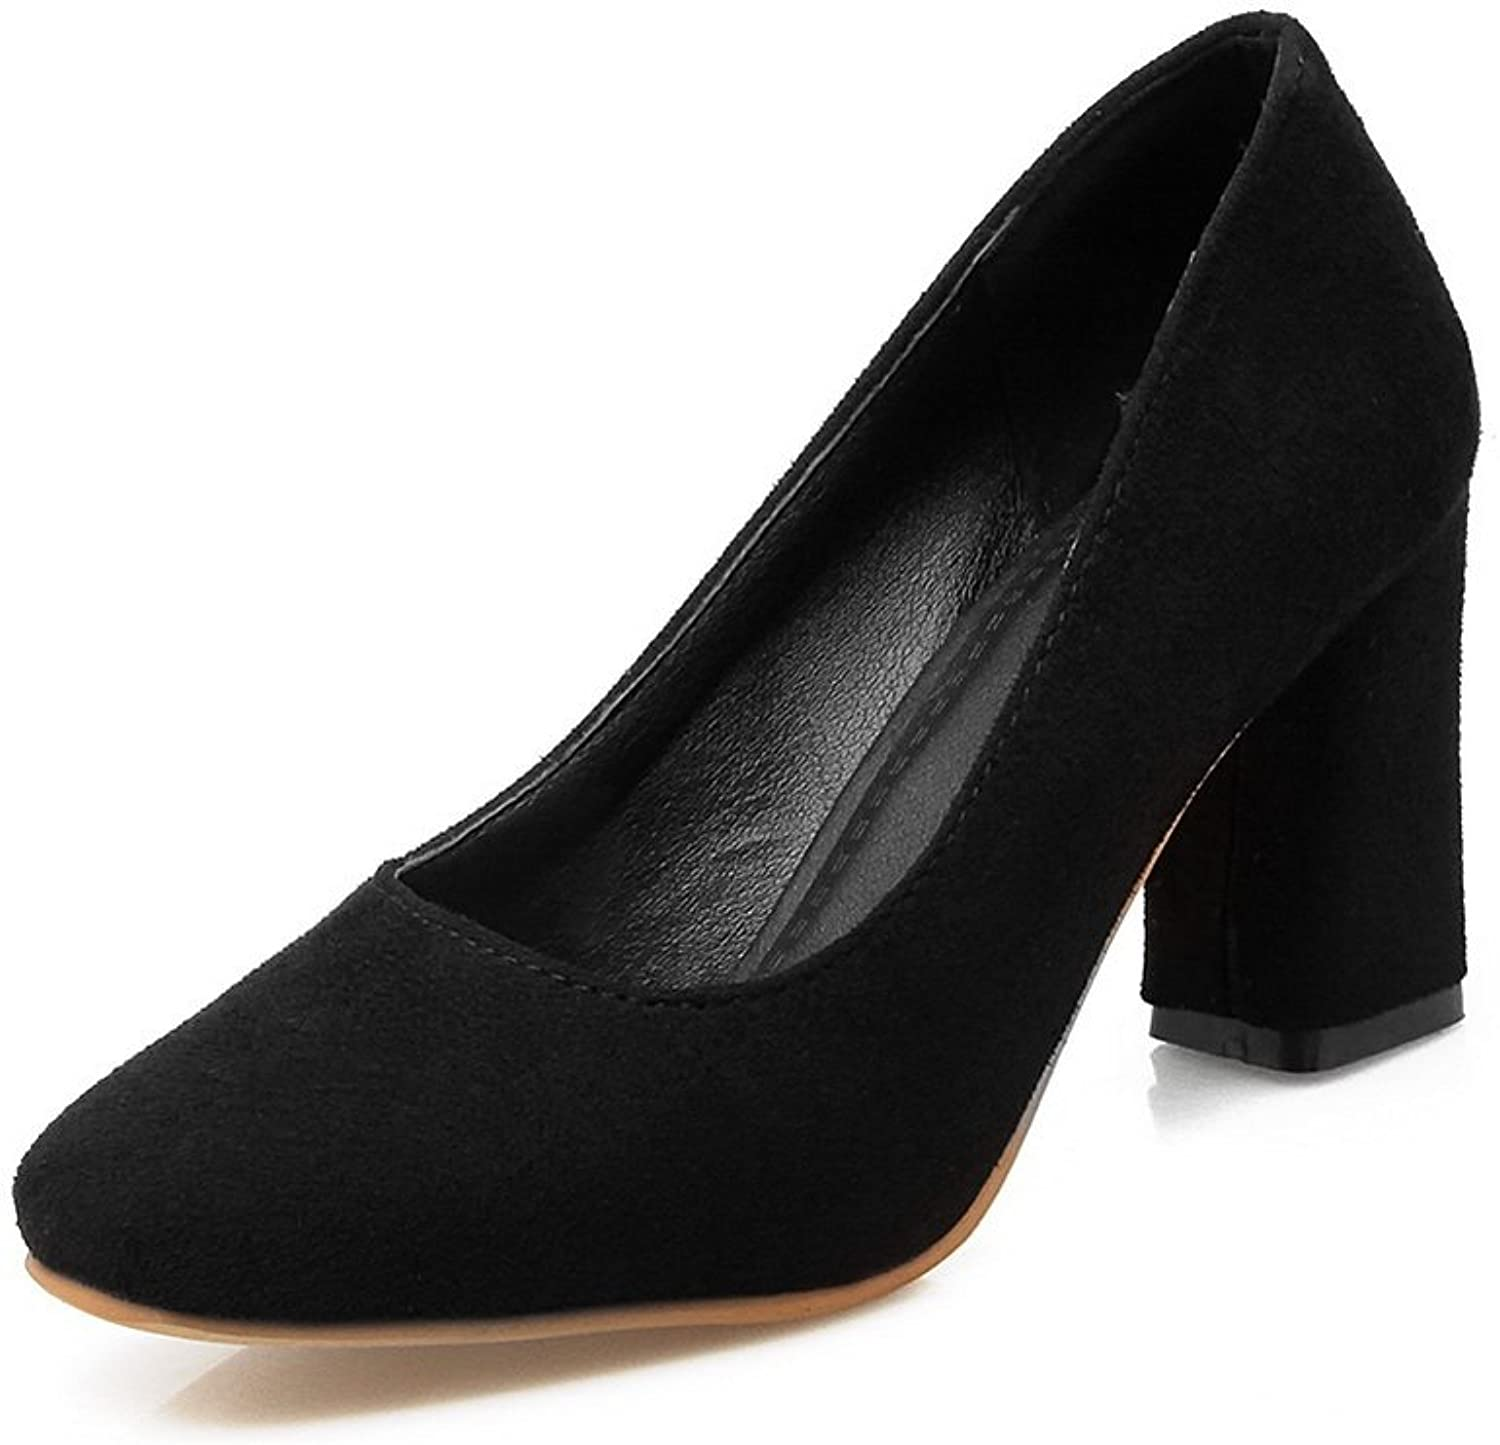 BalaMasa Ladies Square-Toe Chunky Heels Low-Cut Uppers Suede Pumps shoes